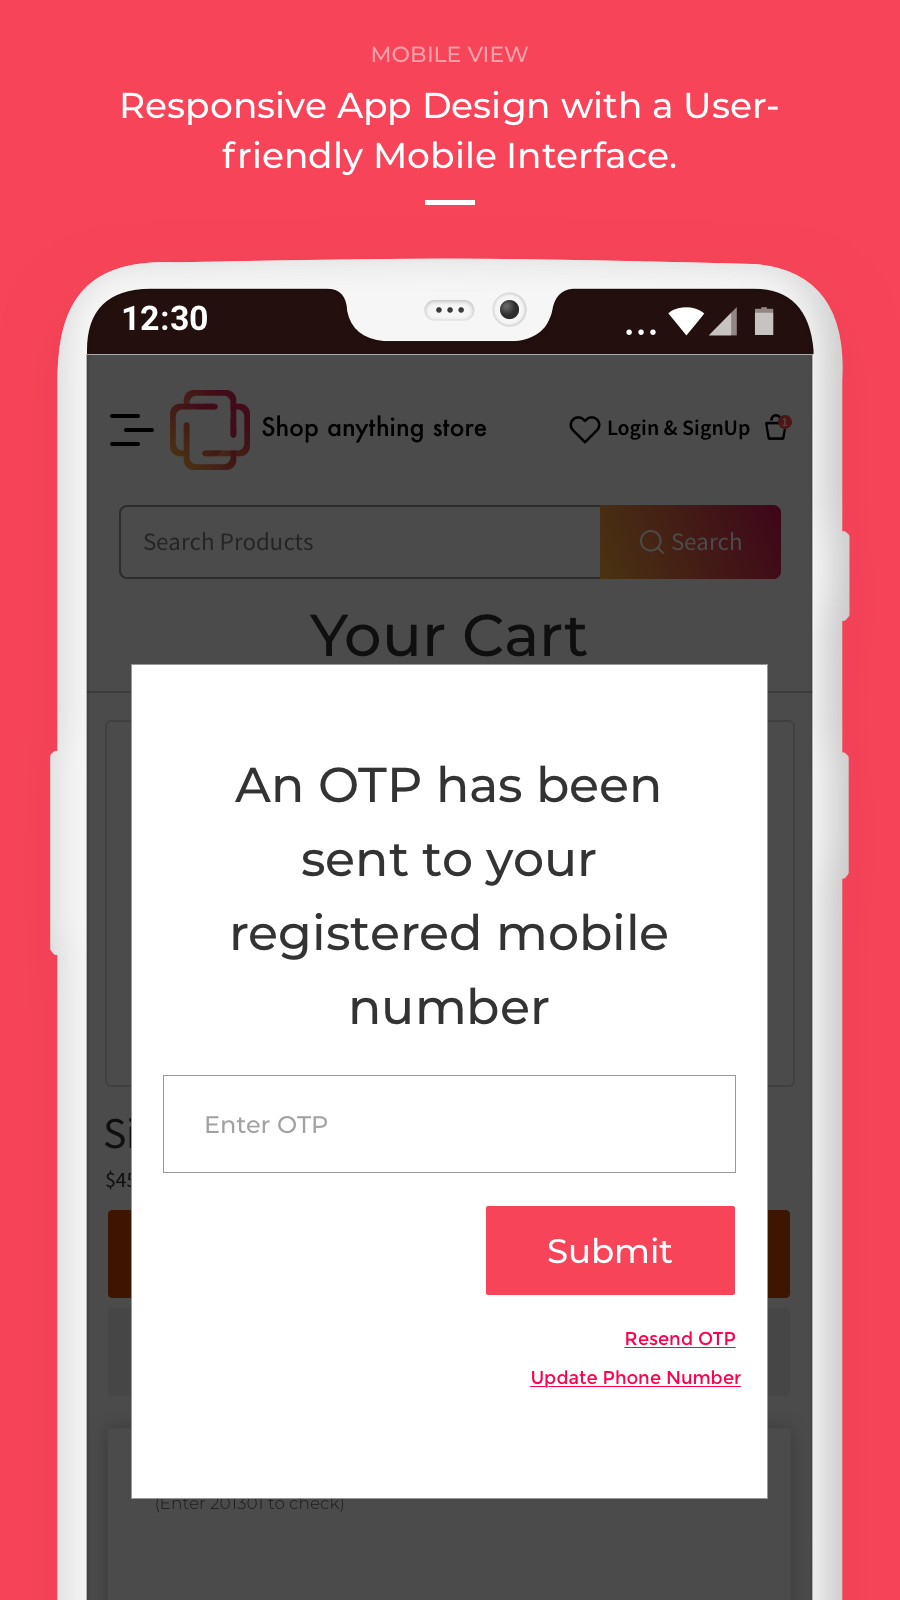 mobile view - otp on cart